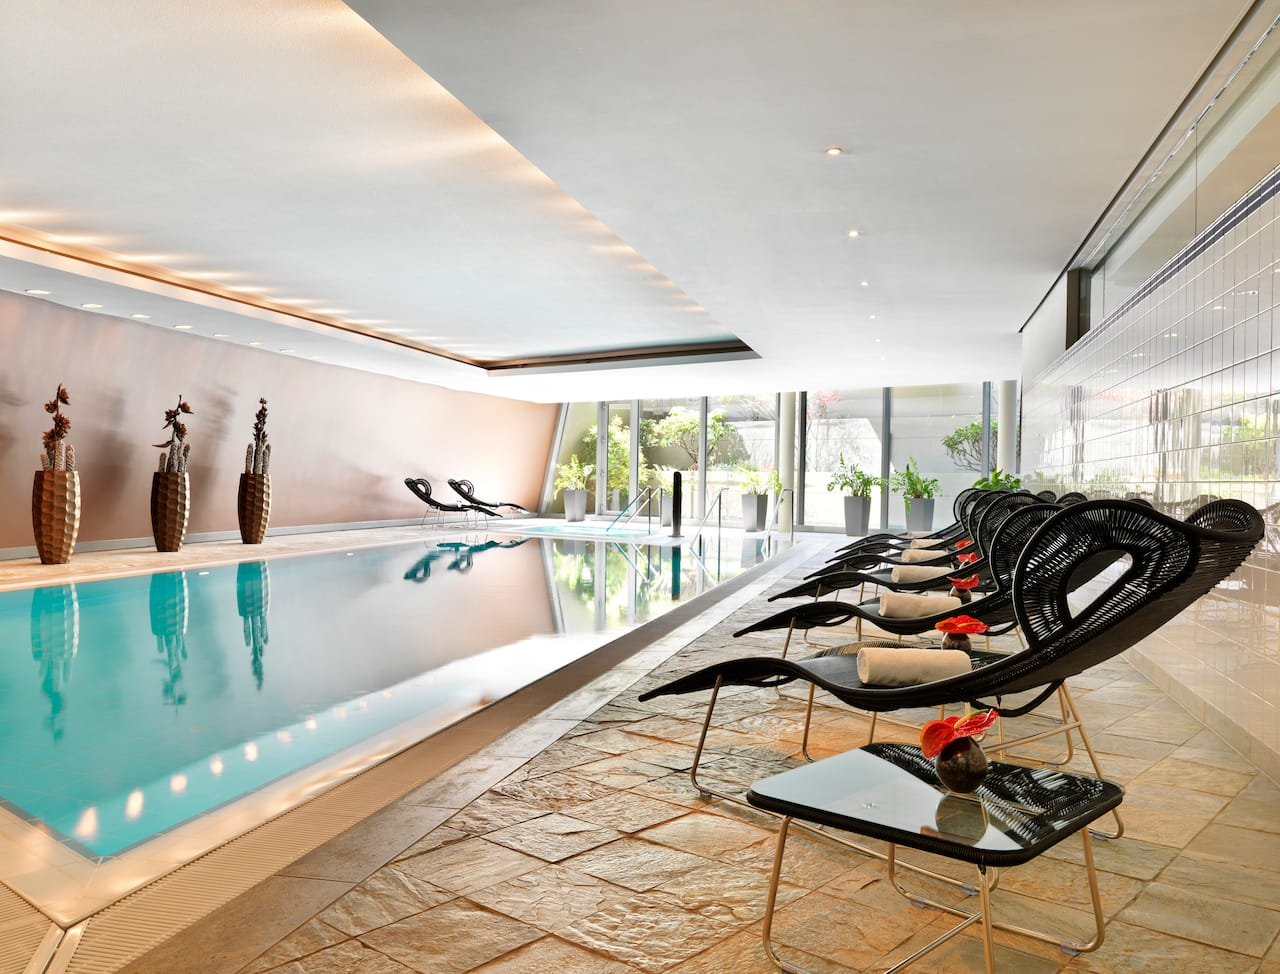 Club Olympus Spa & Fitness at Hyatt Regency Mainz